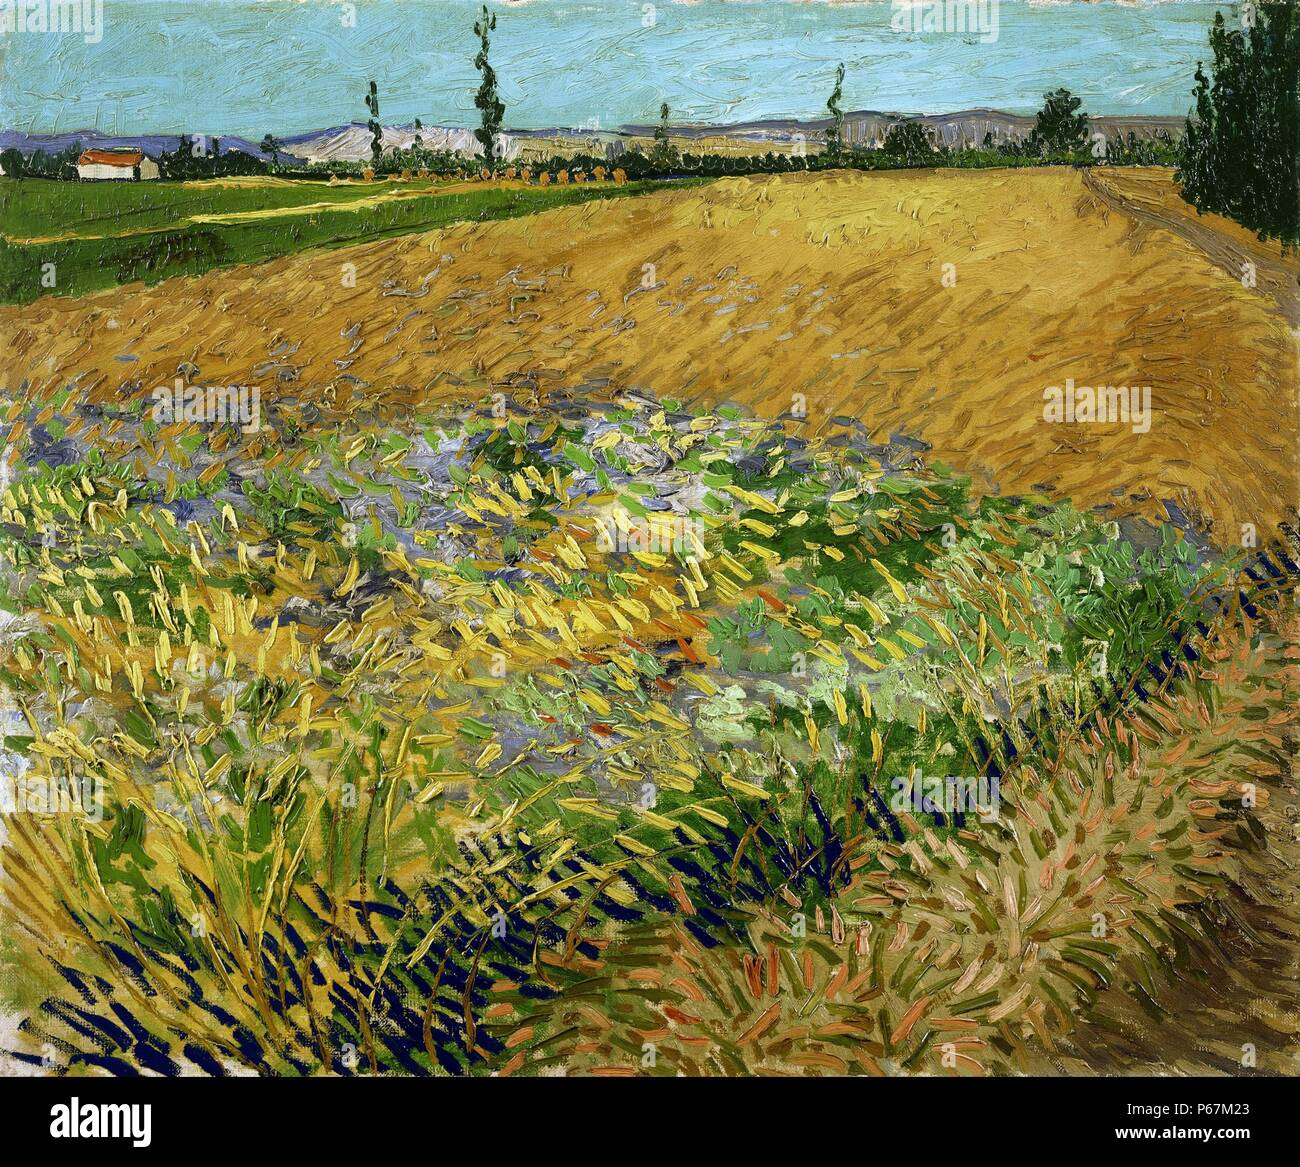 Painting titled 'Wheat Field' by Vincent van Gogh (1853-1890)  post-Impressionist painter of Dutch origin. Dated 1880 - Stock Image